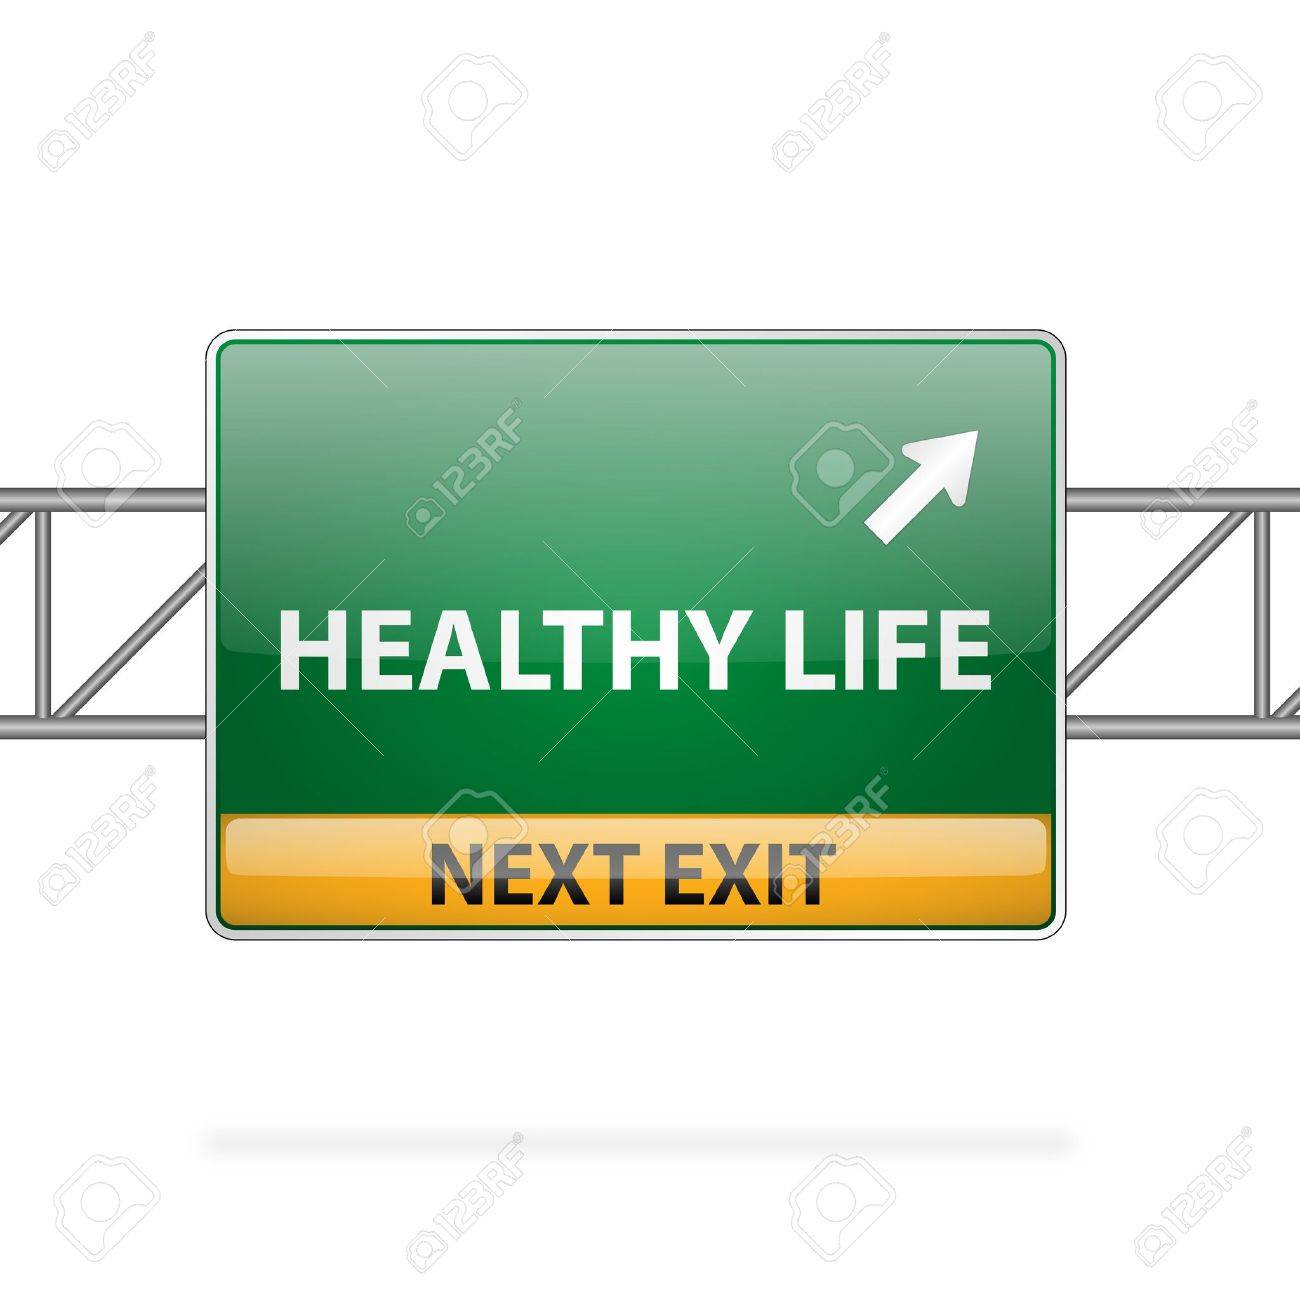 Healthy life concept with road sign showing a change Stock Vector - 15140821